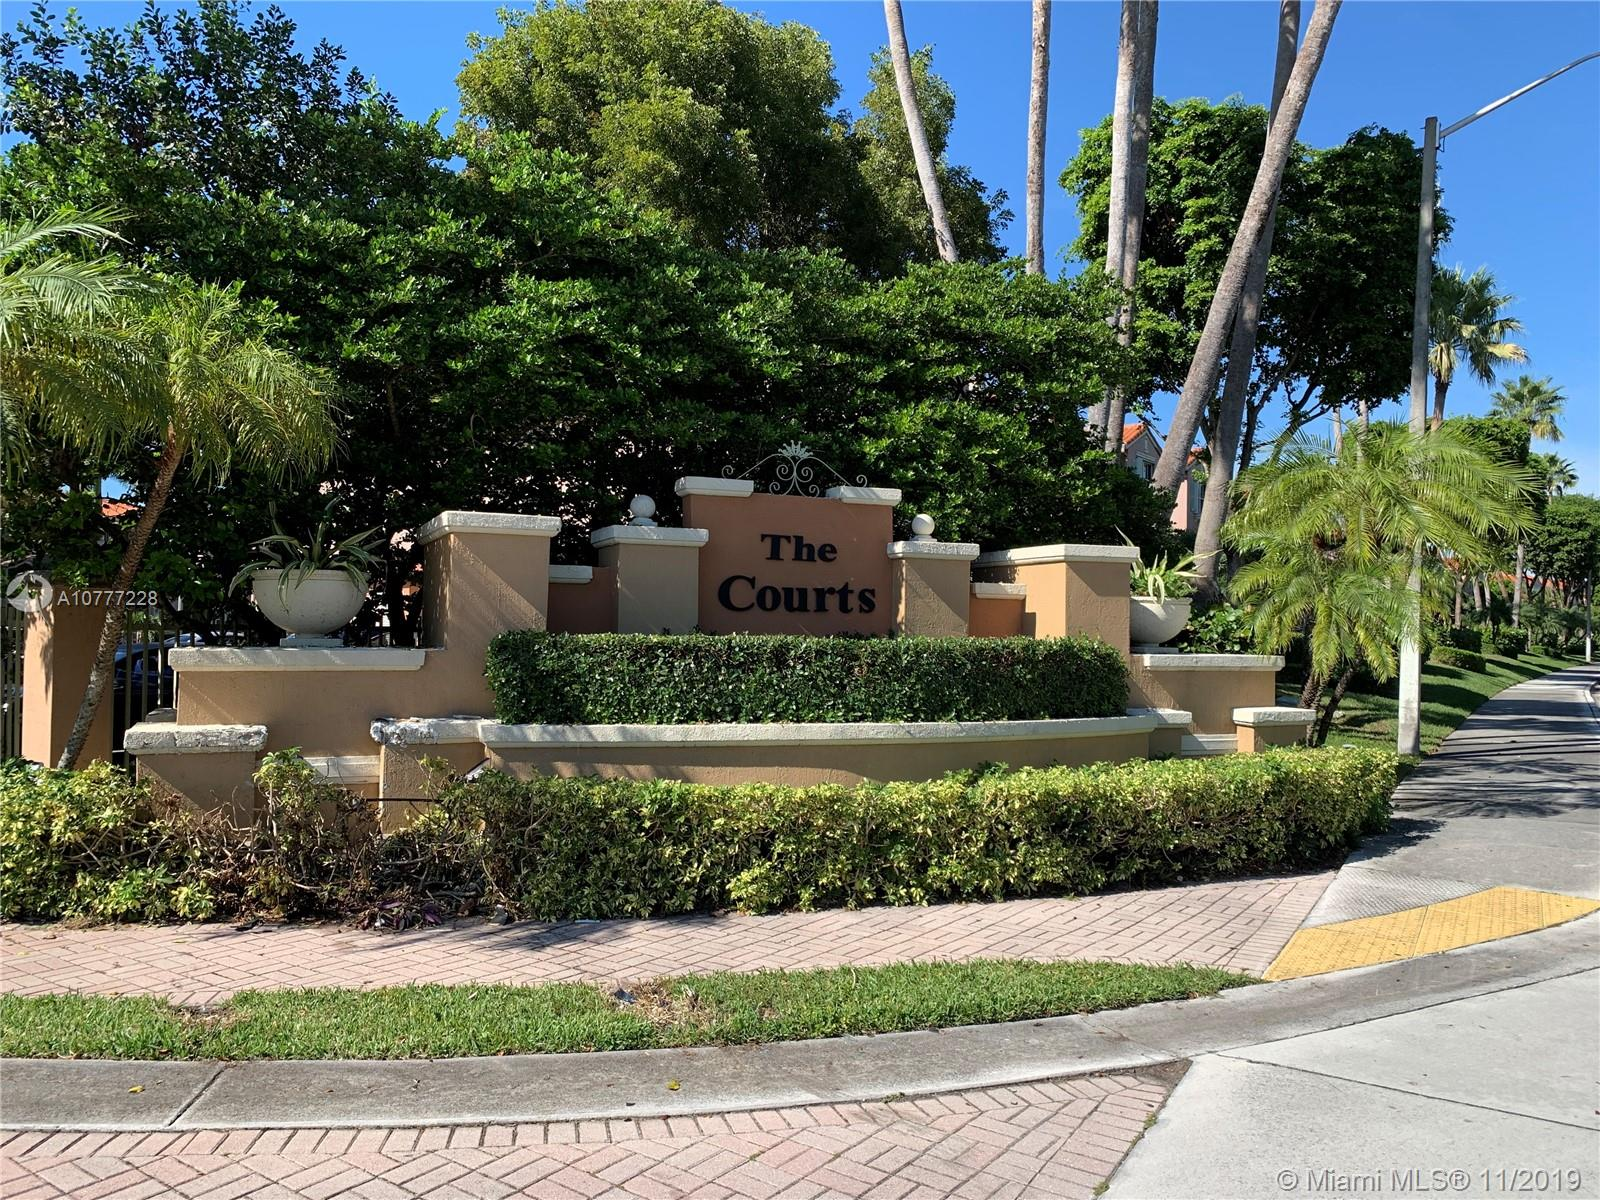 6560 NW 114th Ave #538 For Sale A10777228, FL